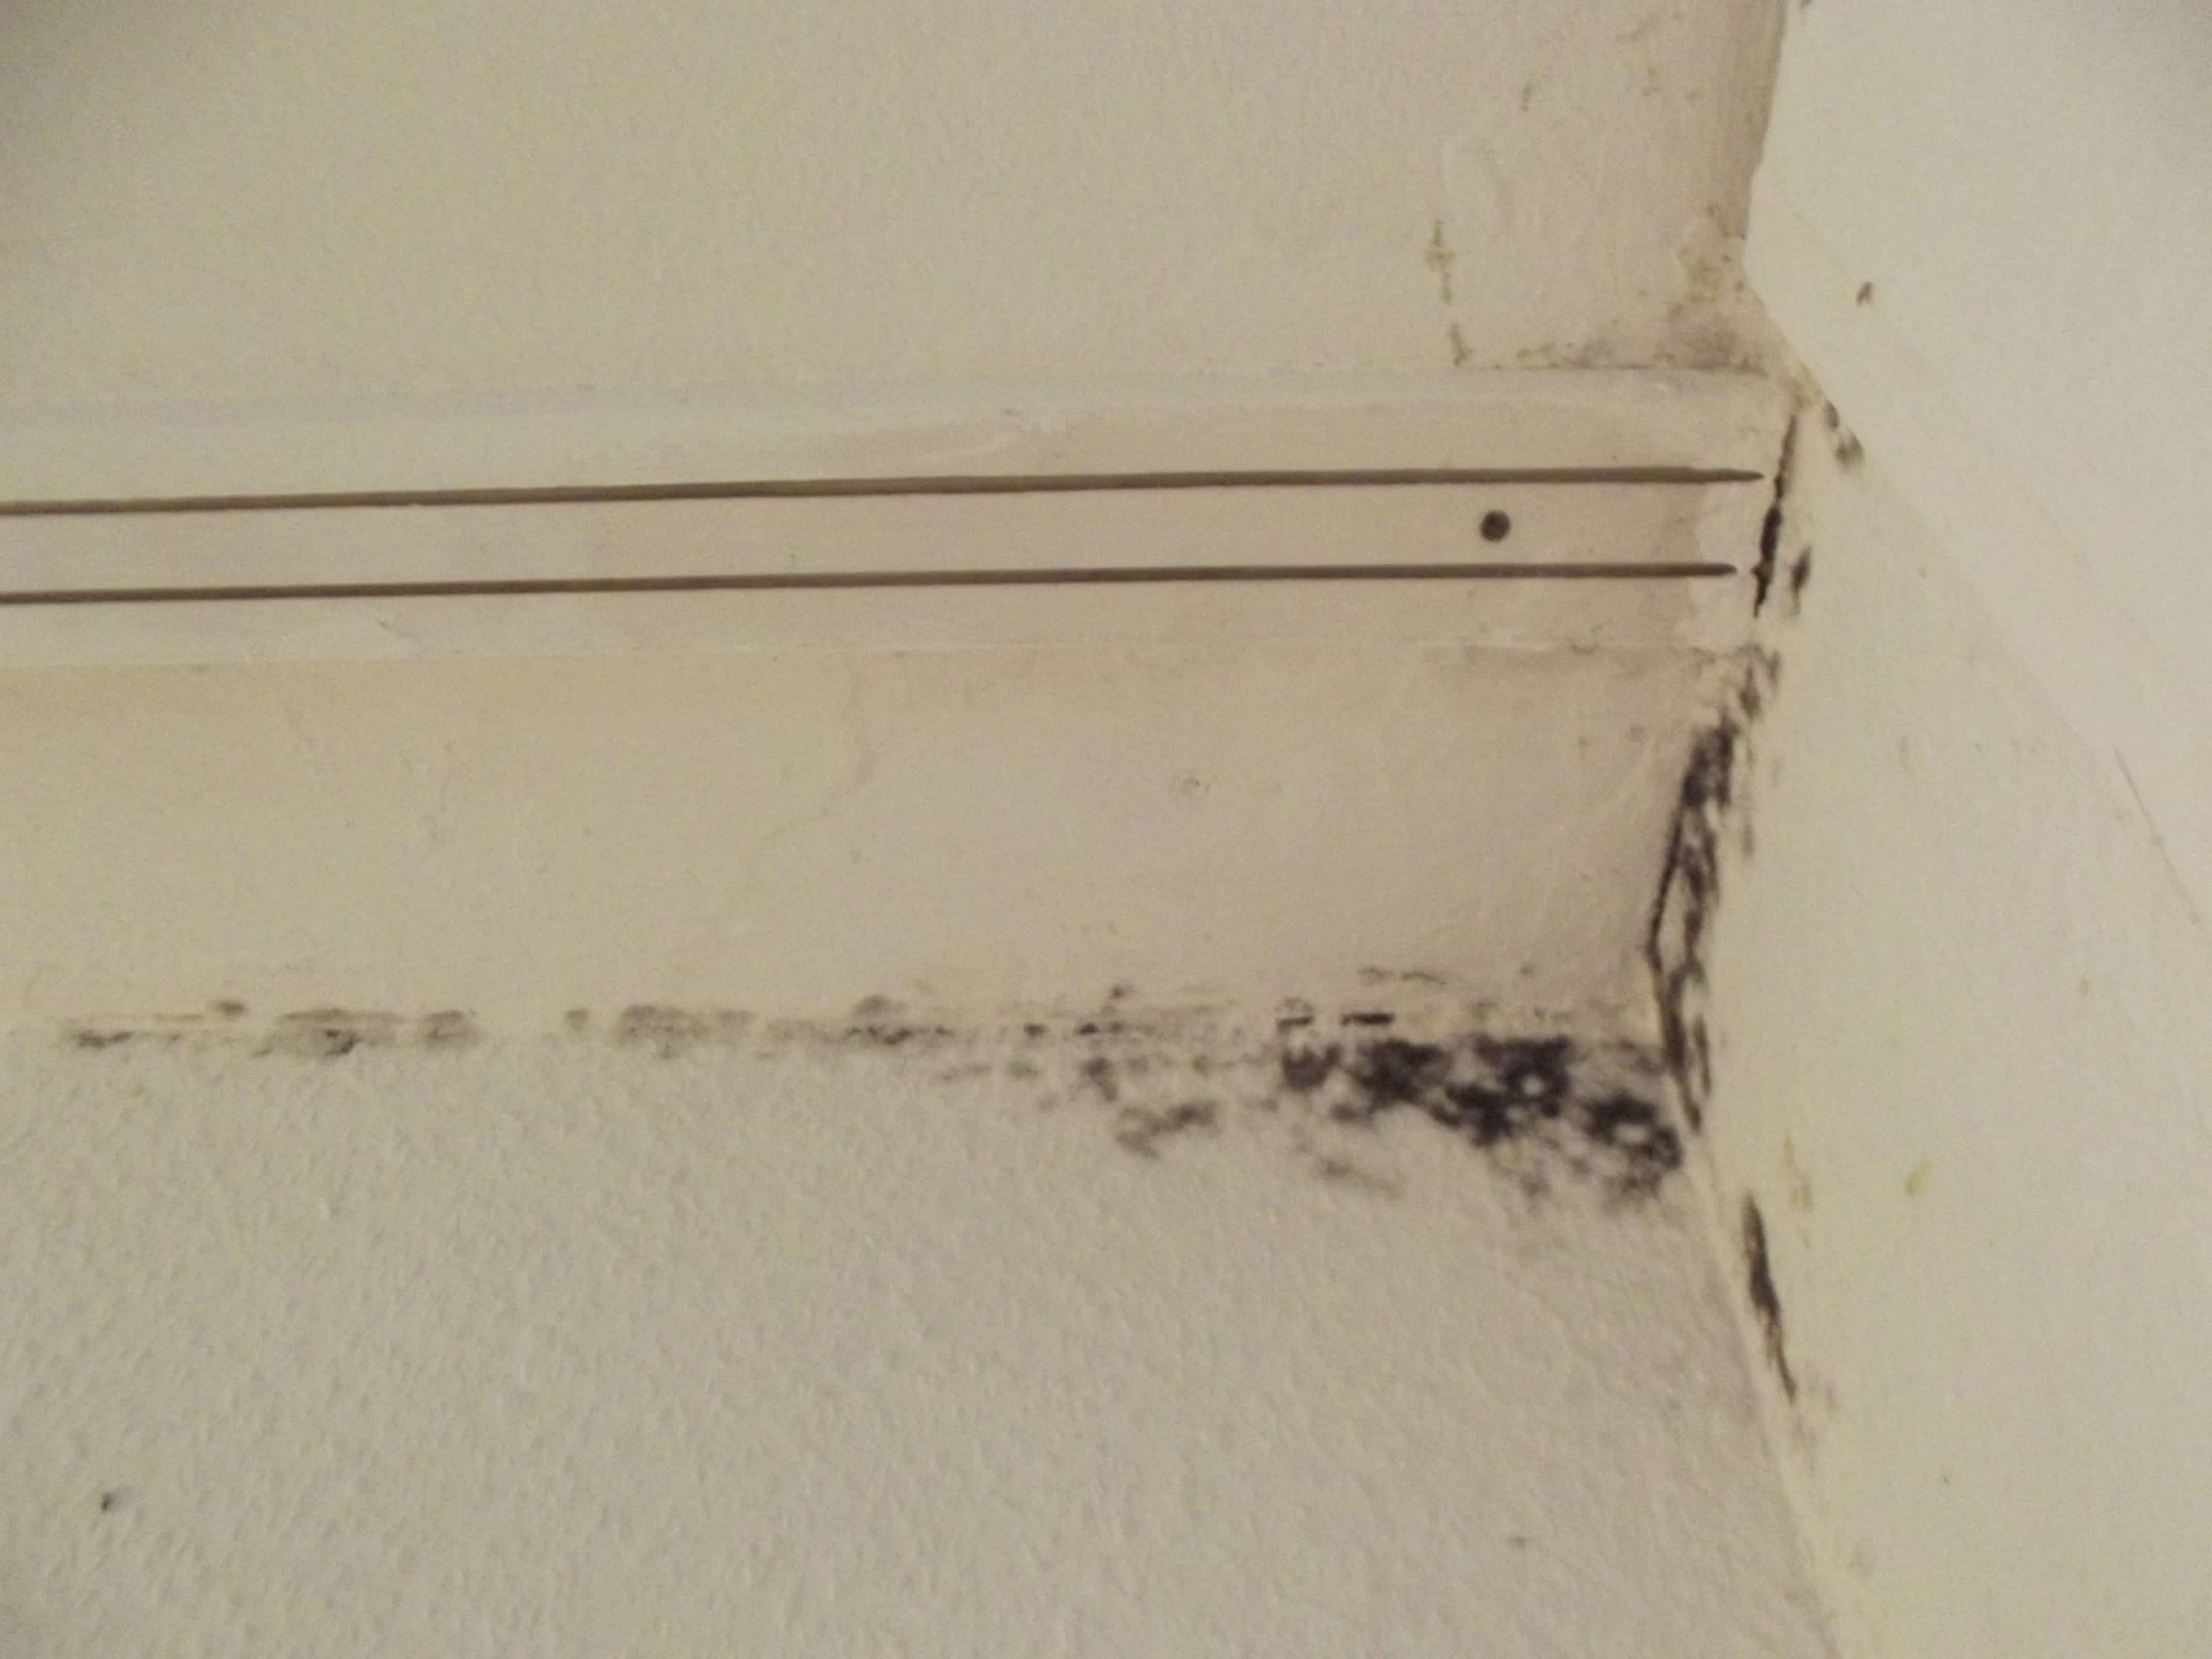 black mold growing in the corner of a house